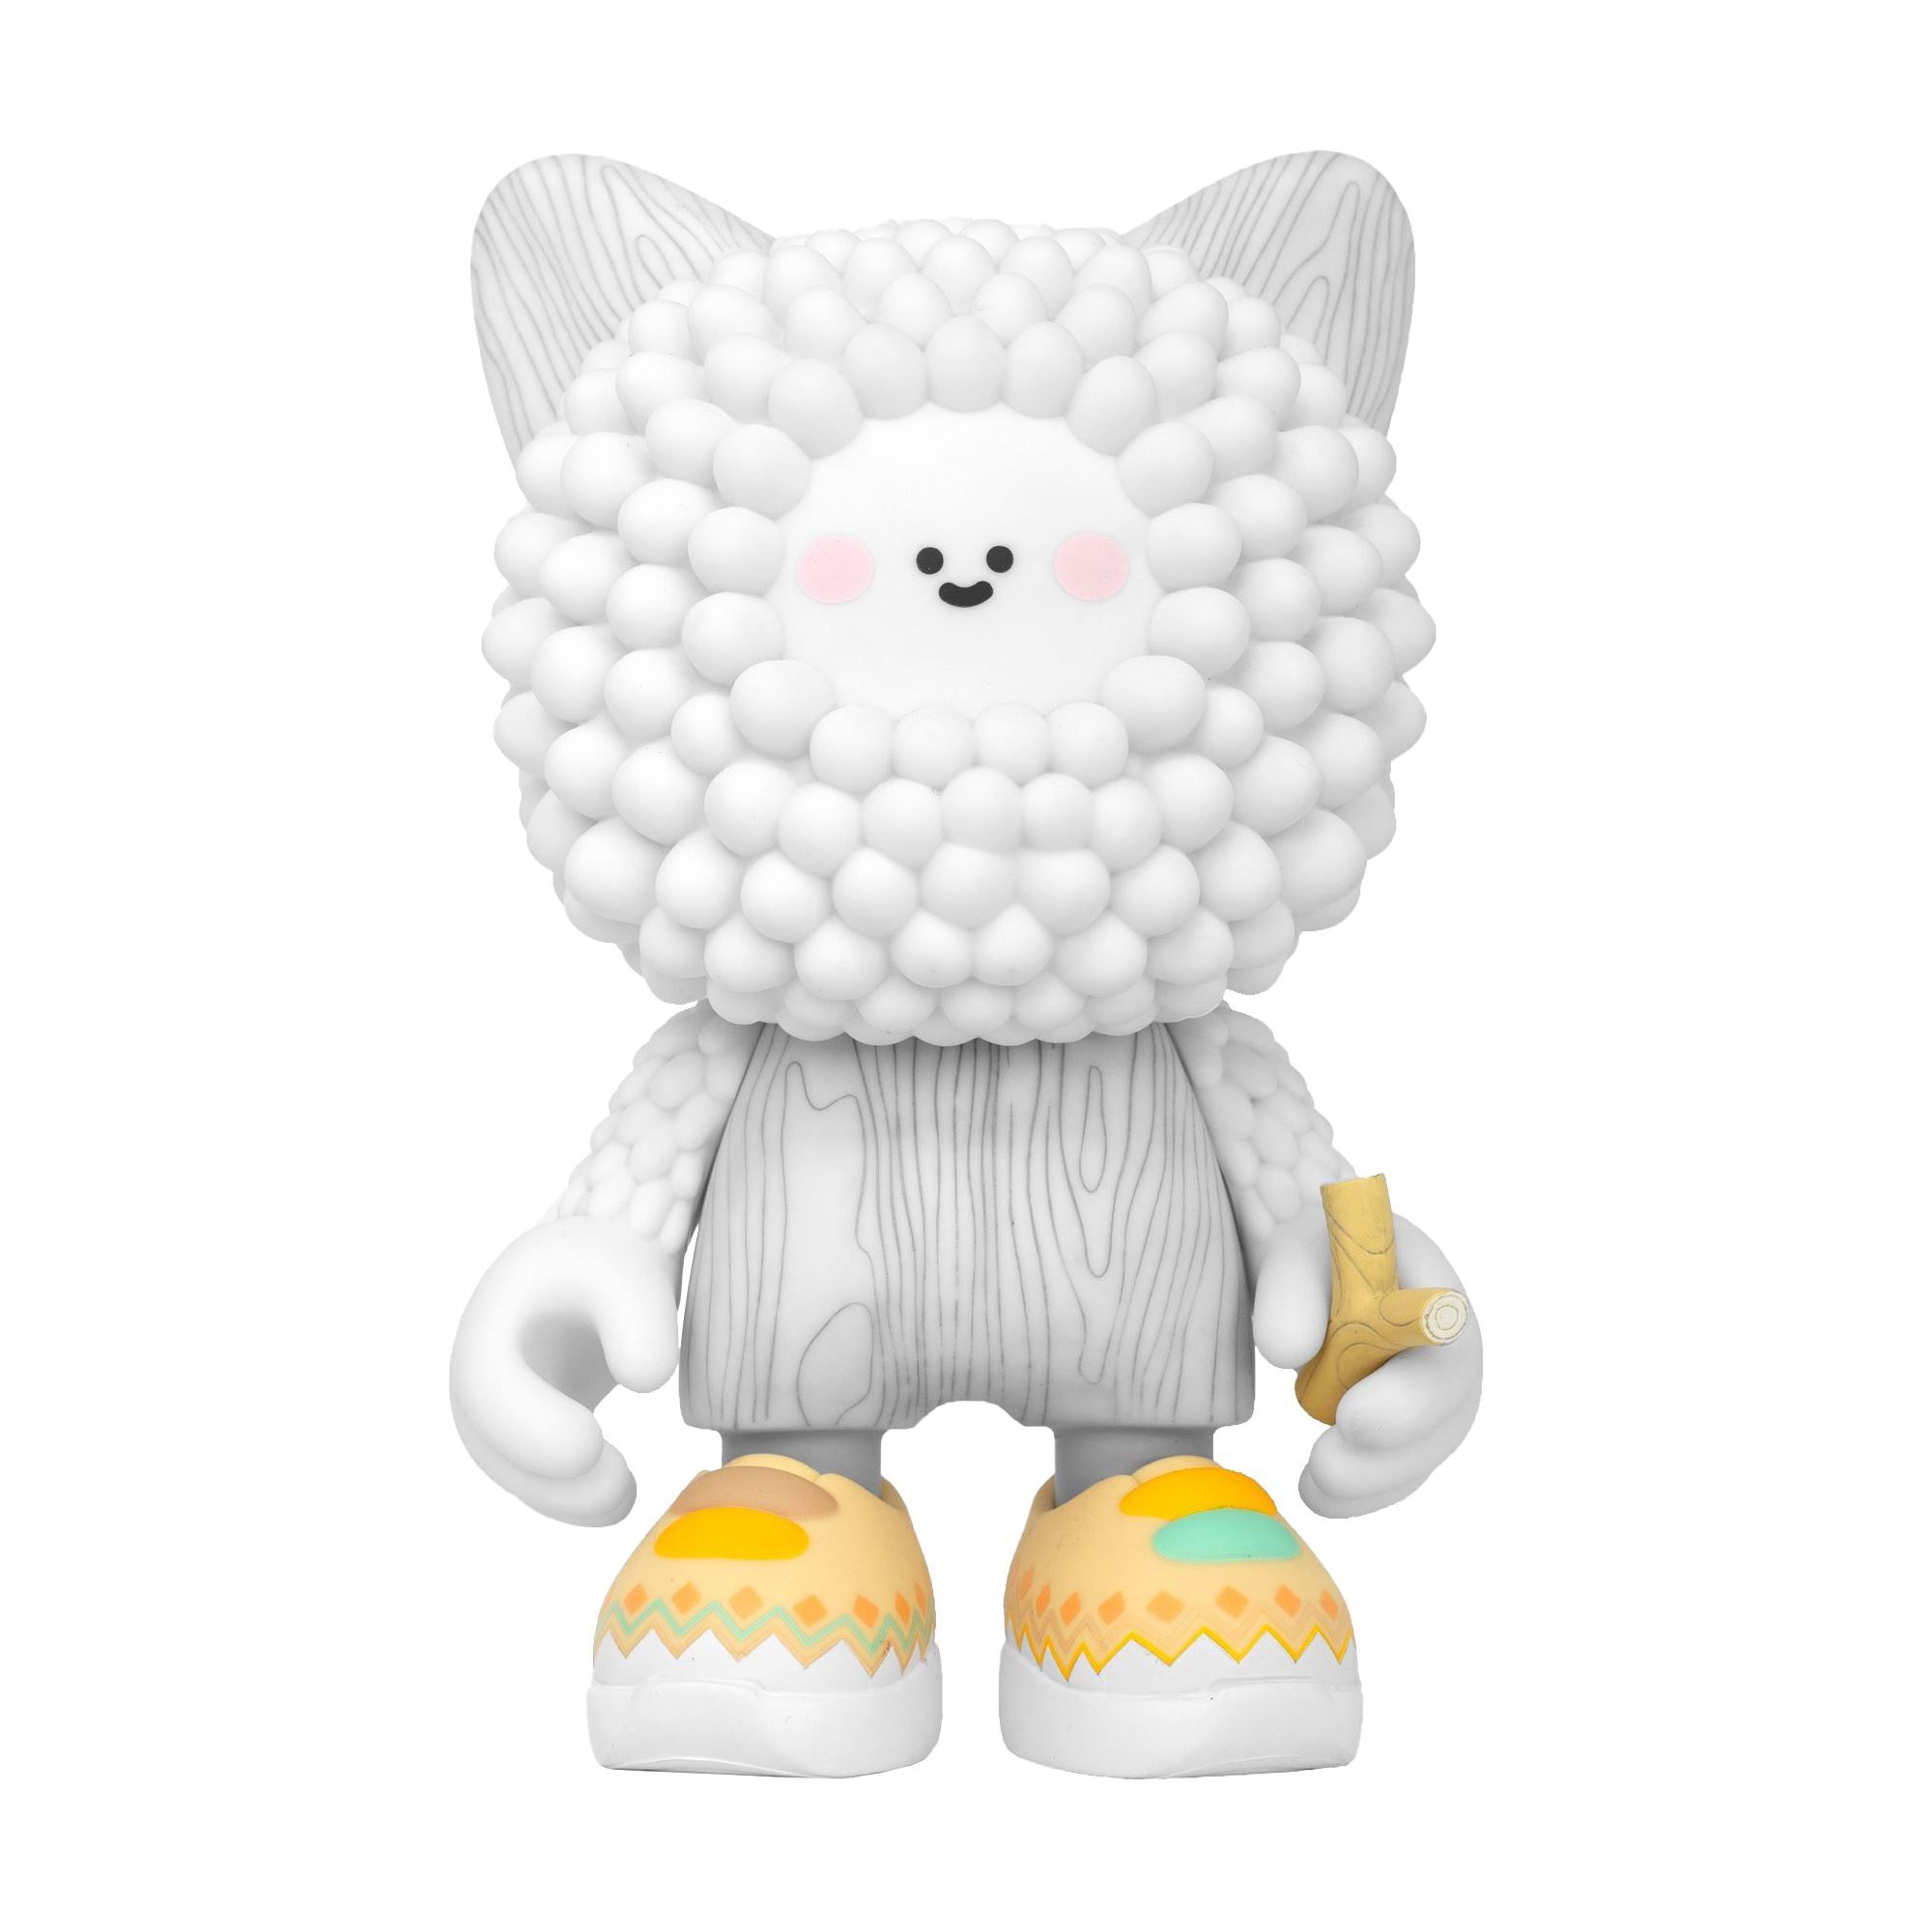 Treeson SuperJanky by Bubi Au Yeung & Superplastic 8-inch Vinyl Toy Superplastic